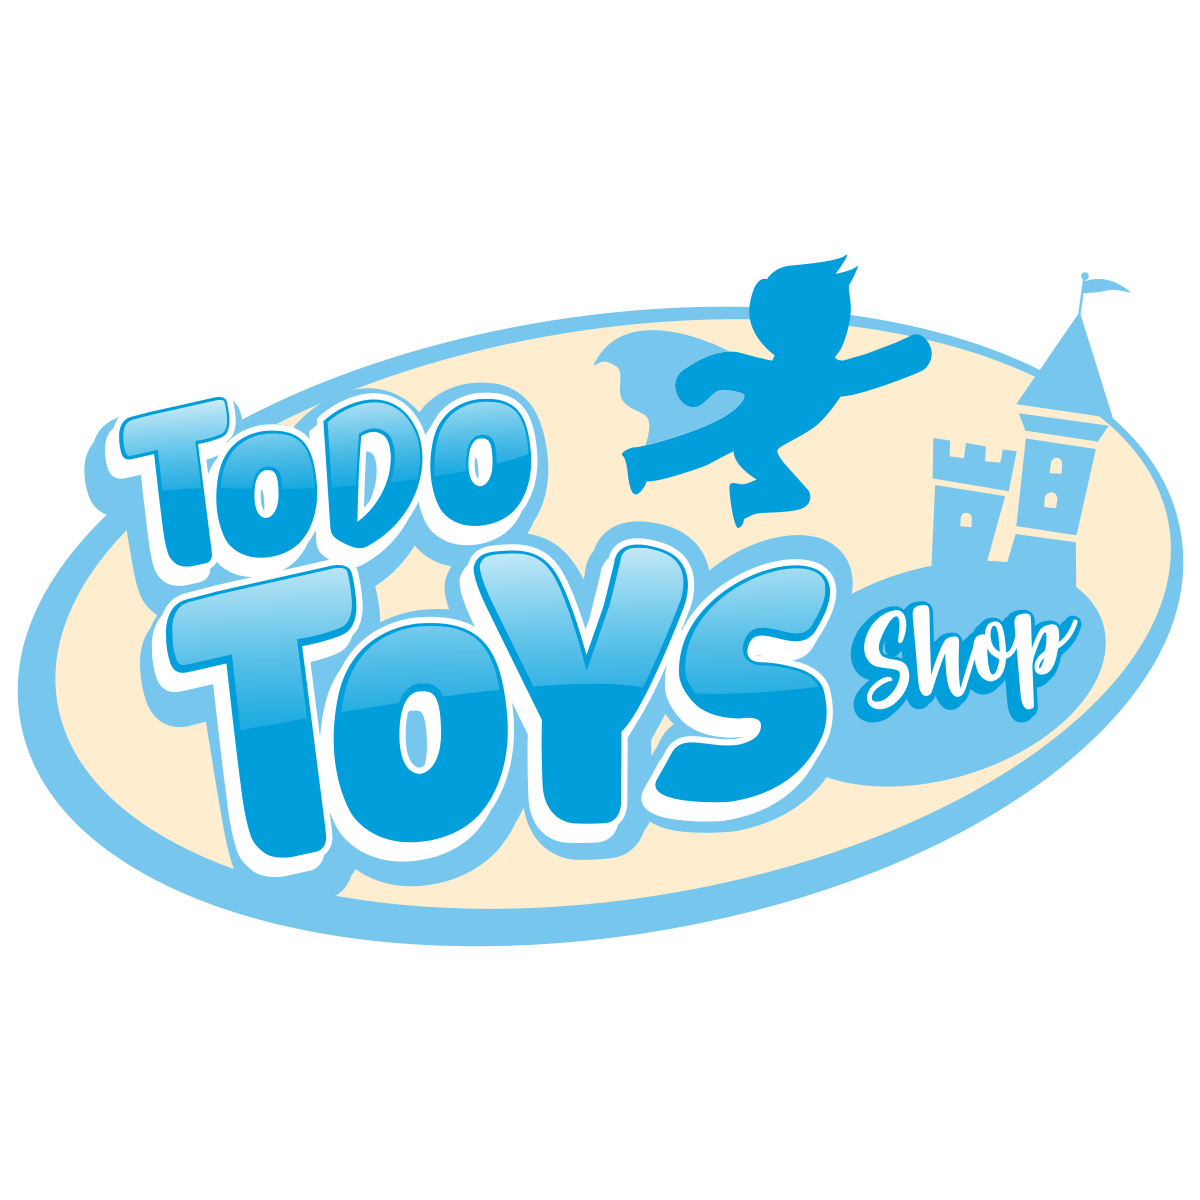 TodoToy Shop